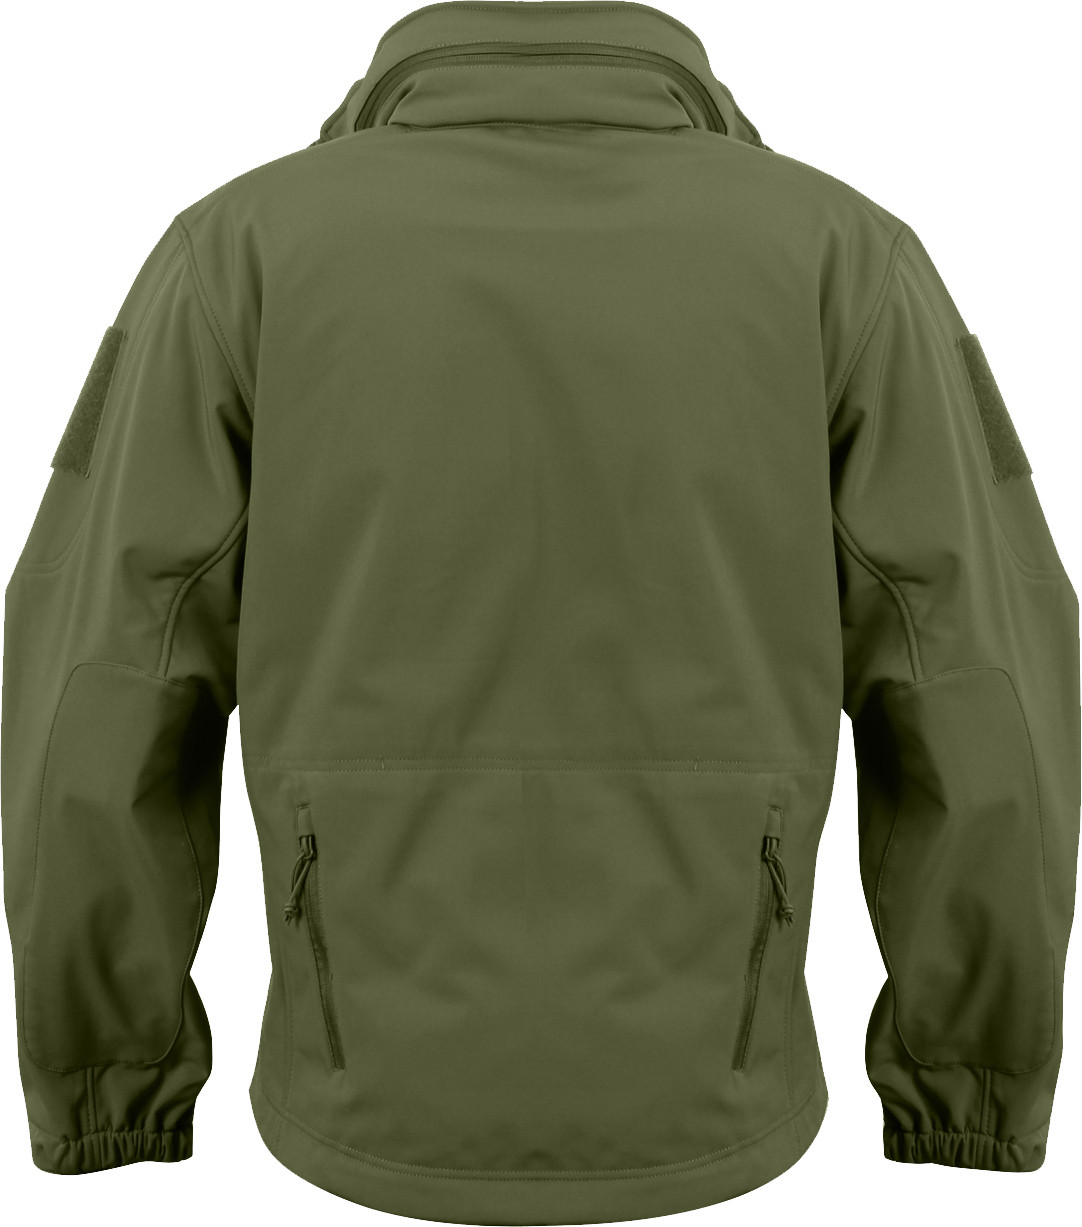 Olive Drab Military Special Operations Tactical Soft Shell Jacket 4b9c8060e2b